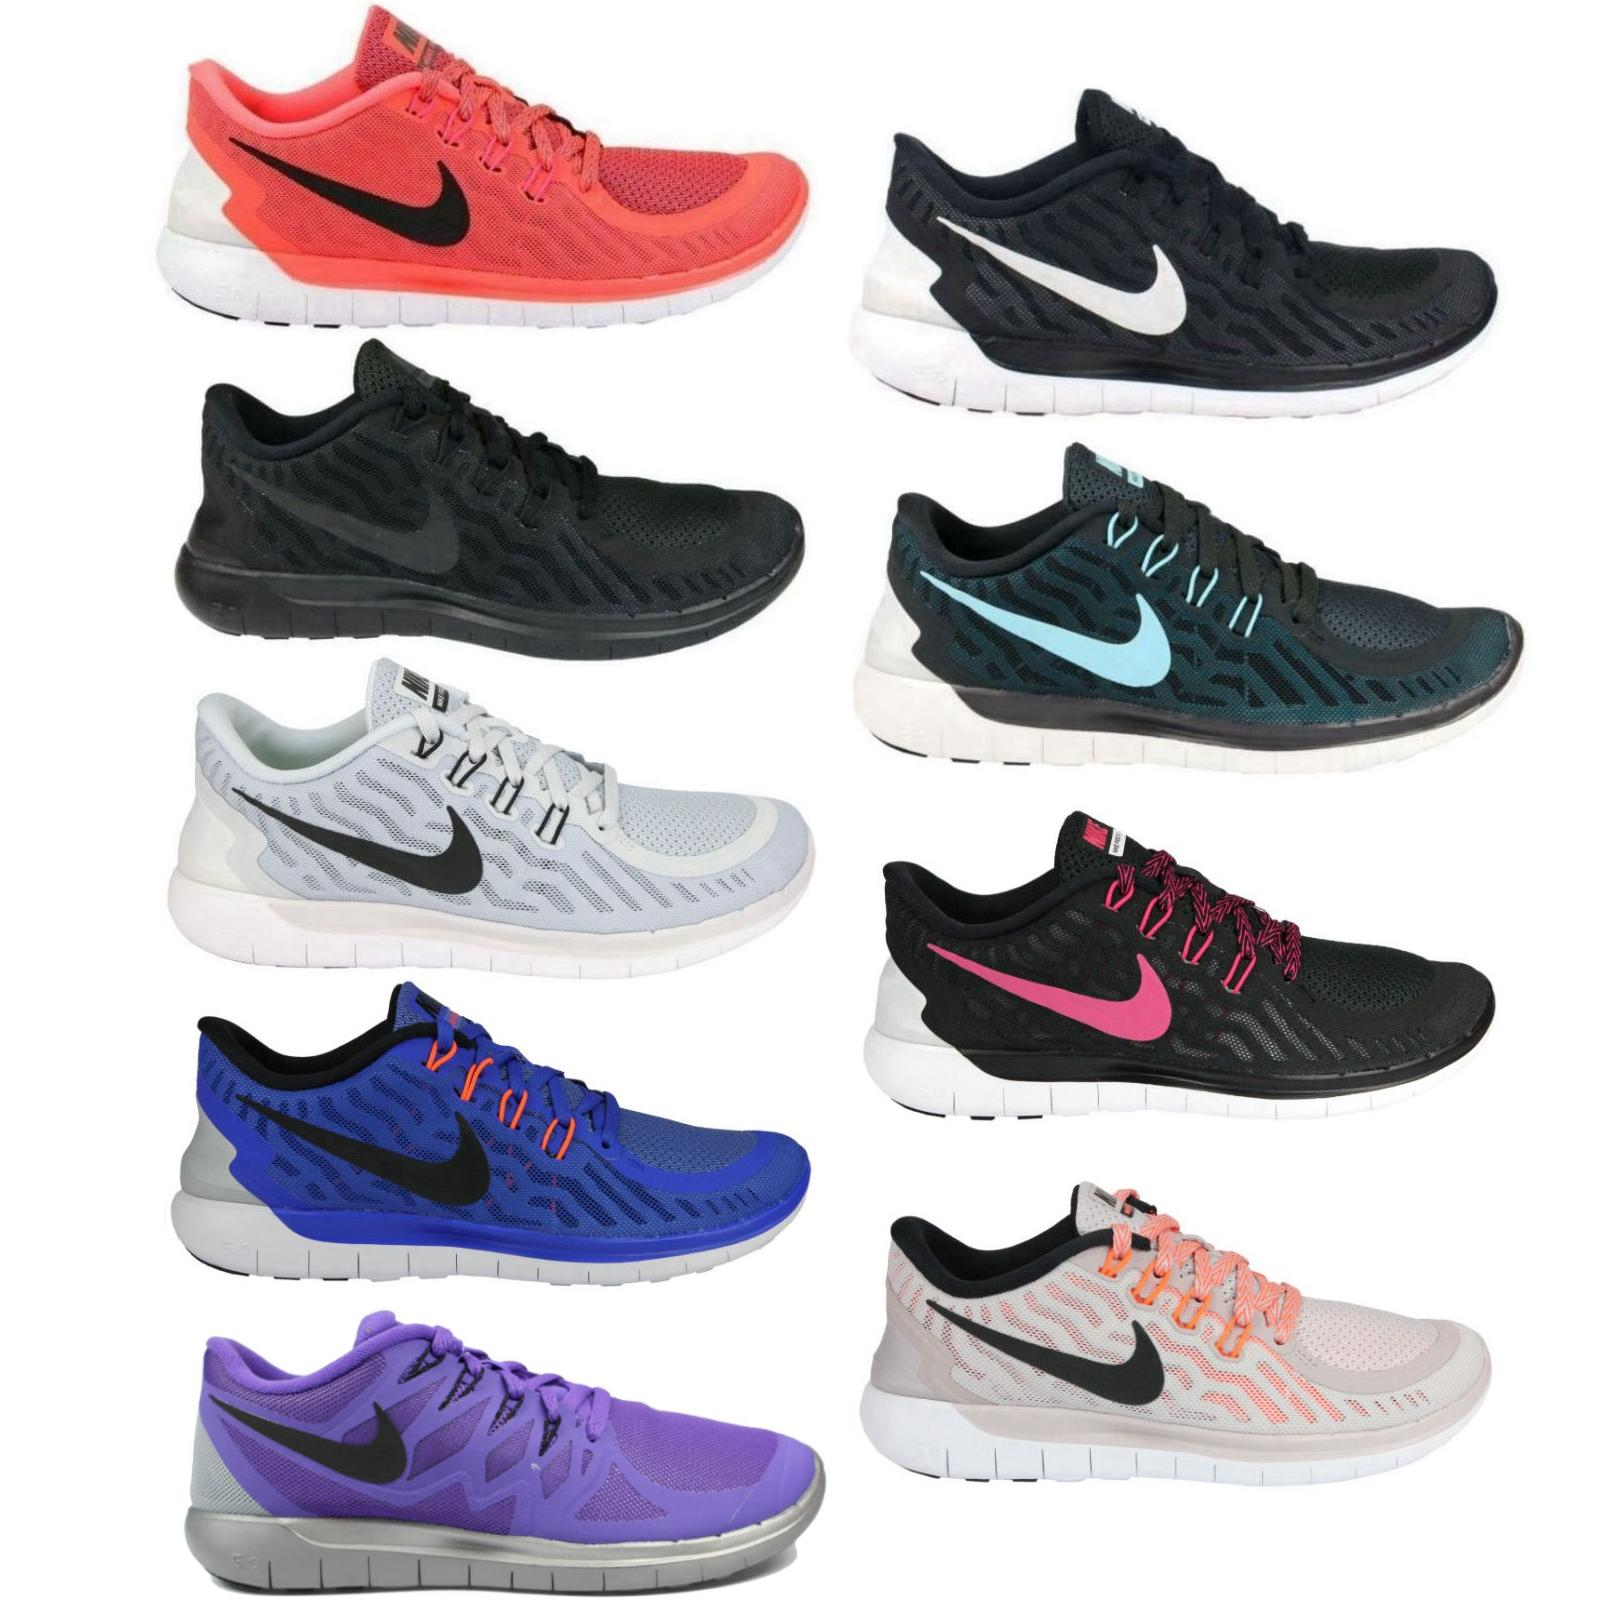 nike free 5 0 schuhe laufschuhe joggingschuhe. Black Bedroom Furniture Sets. Home Design Ideas